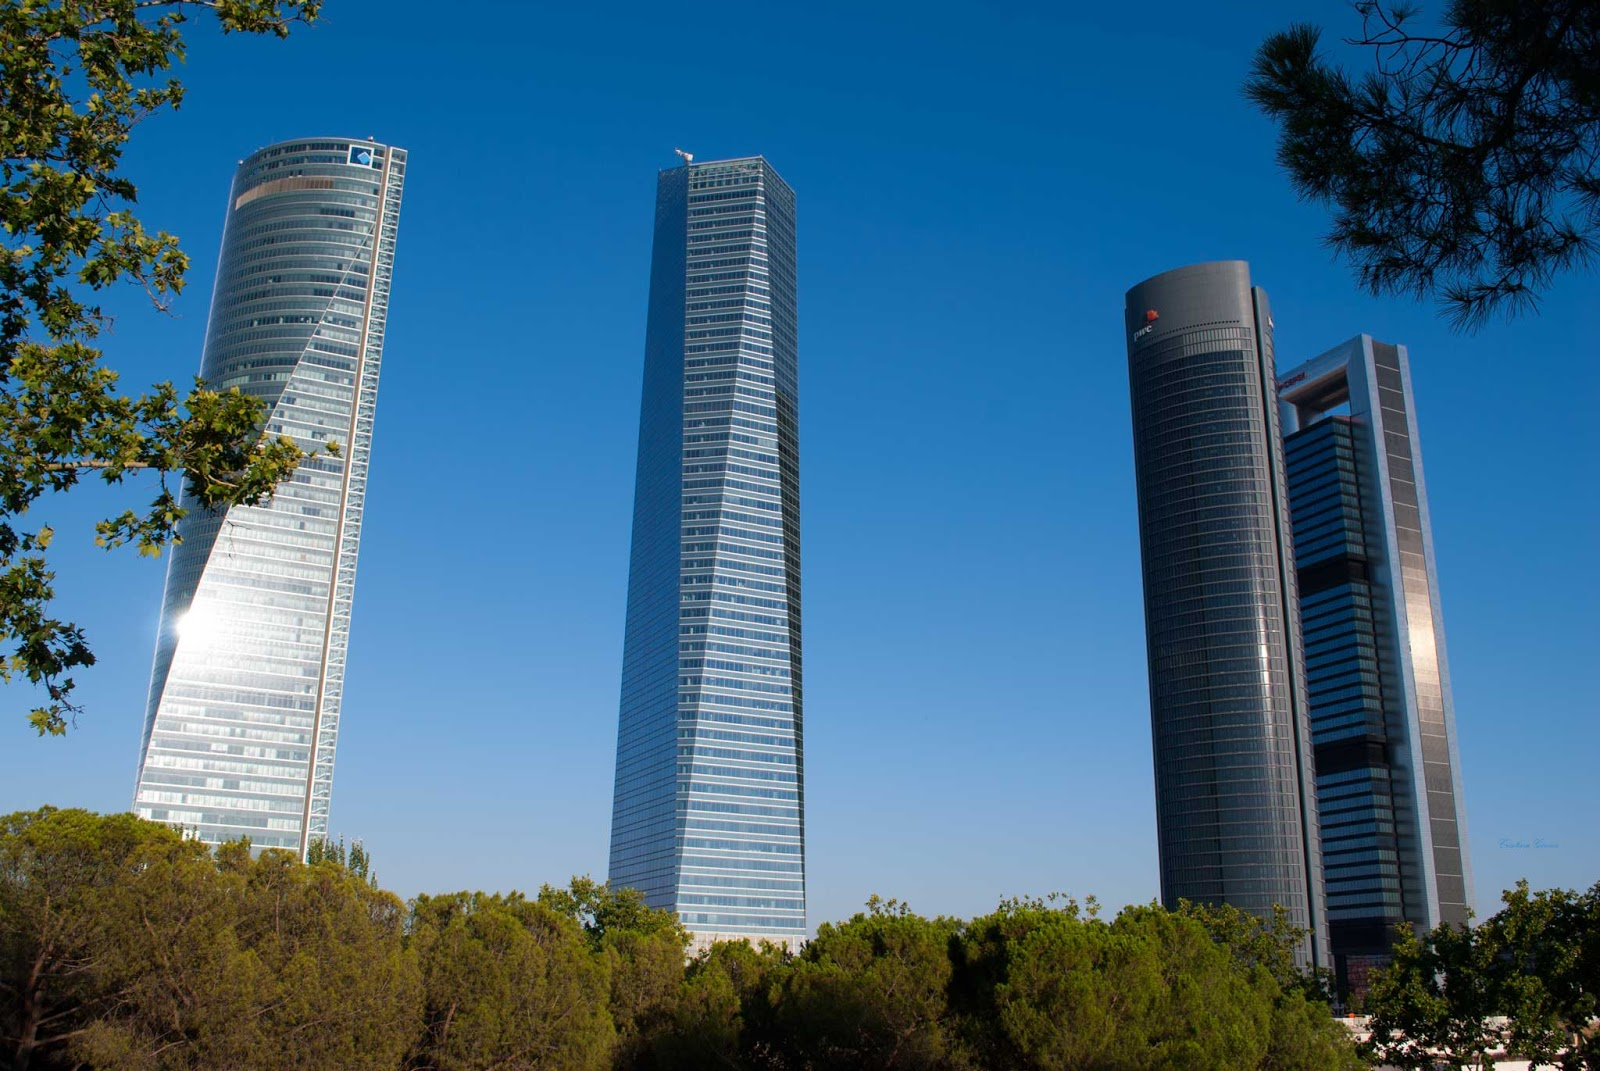 4 towers skyscrapers eurostars hotel madrid